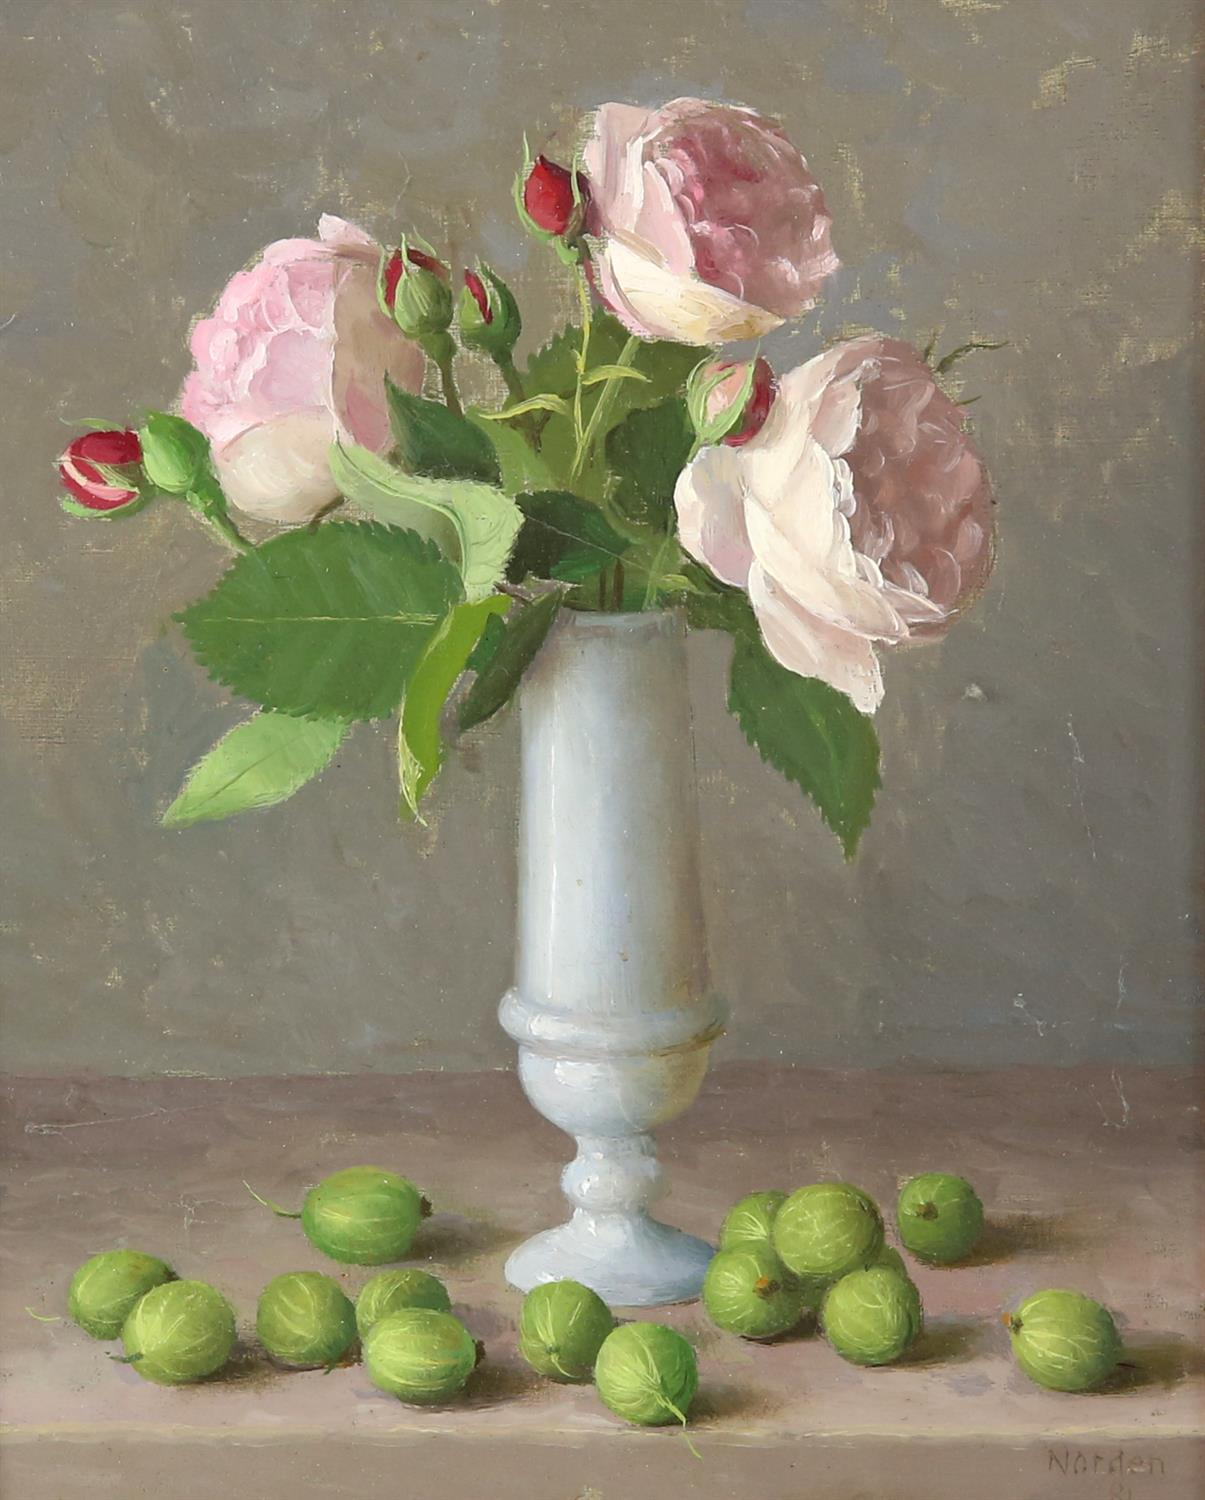 Gerald Norden (British,1912-2000). 'Roses and Gooseberries. Oil on panel. 1981. Signed and dated